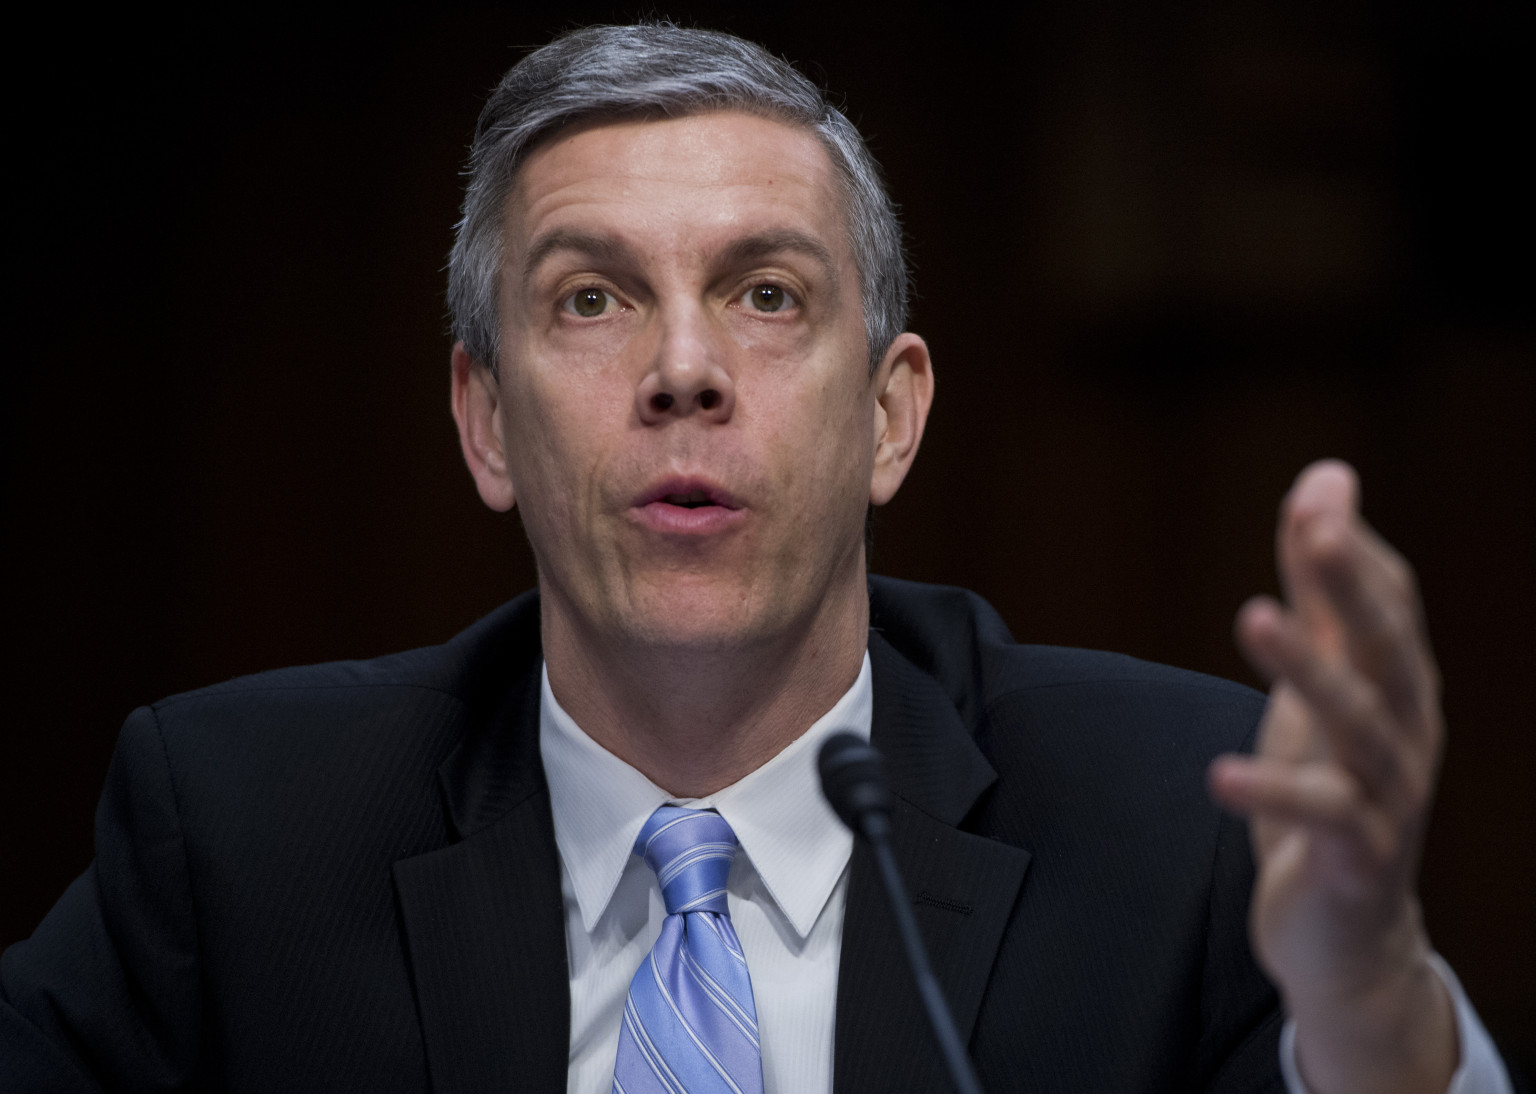 arne duncan thesis Samantha power, our great crusader against genocide, is weirdly complacent about these mass slaughters why the washington post klein, joseph (april 27.